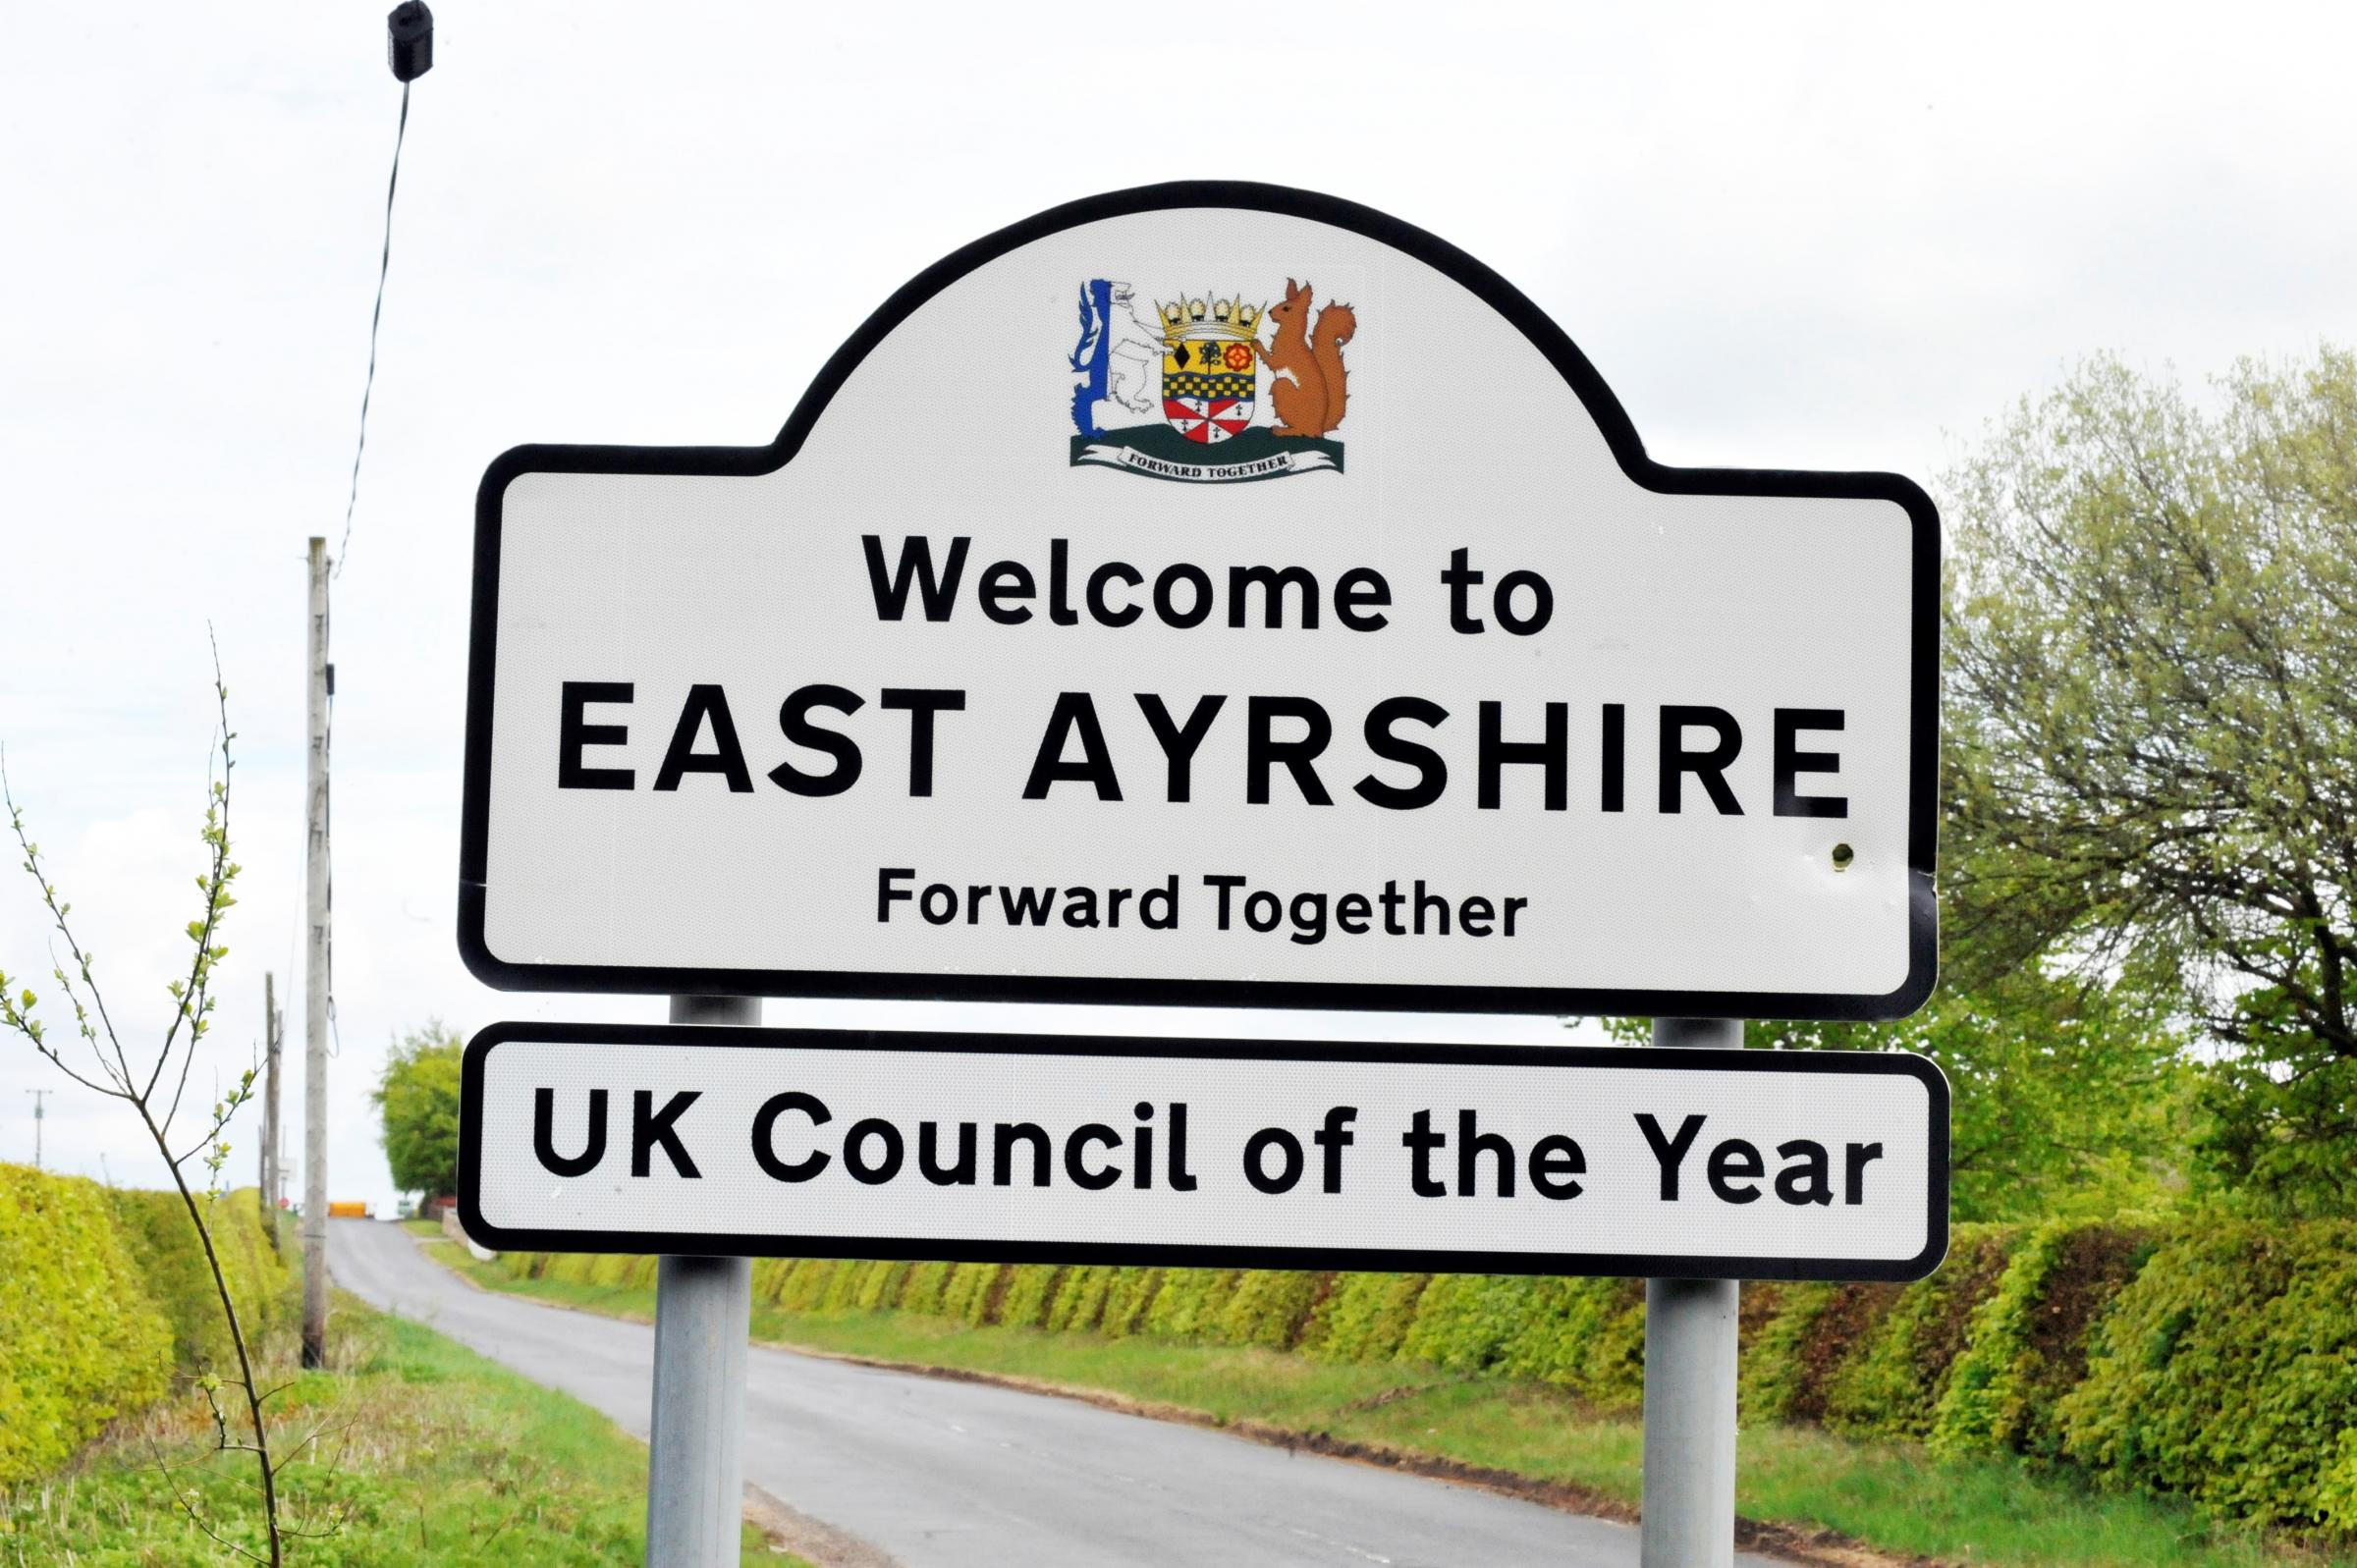 Crosshands, East Ayrshire UK Council of the year sign..